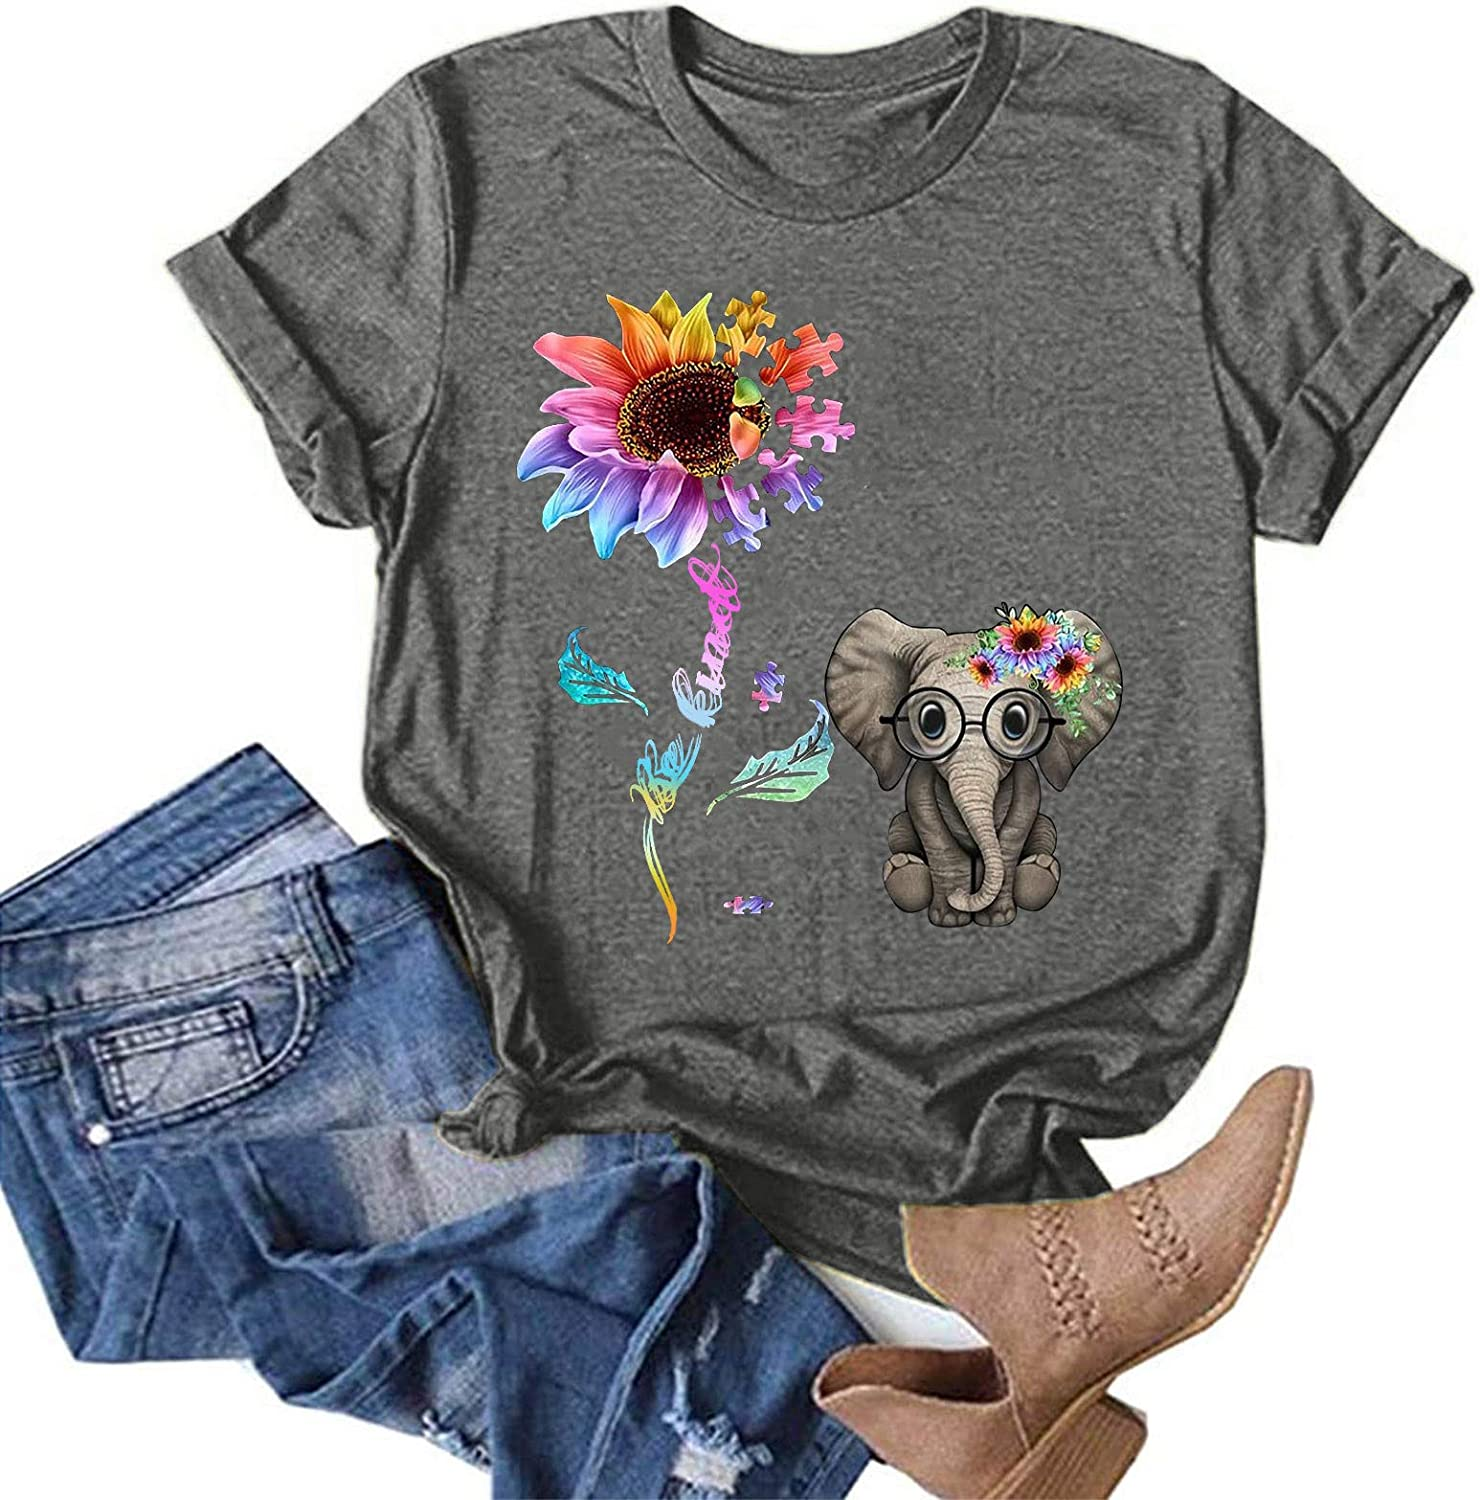 Fankle Summer Vintage Tops for Women, Casual Short Sleeve Loose Fit Sunflower Graphic Tees Vintage Shirts Blouses